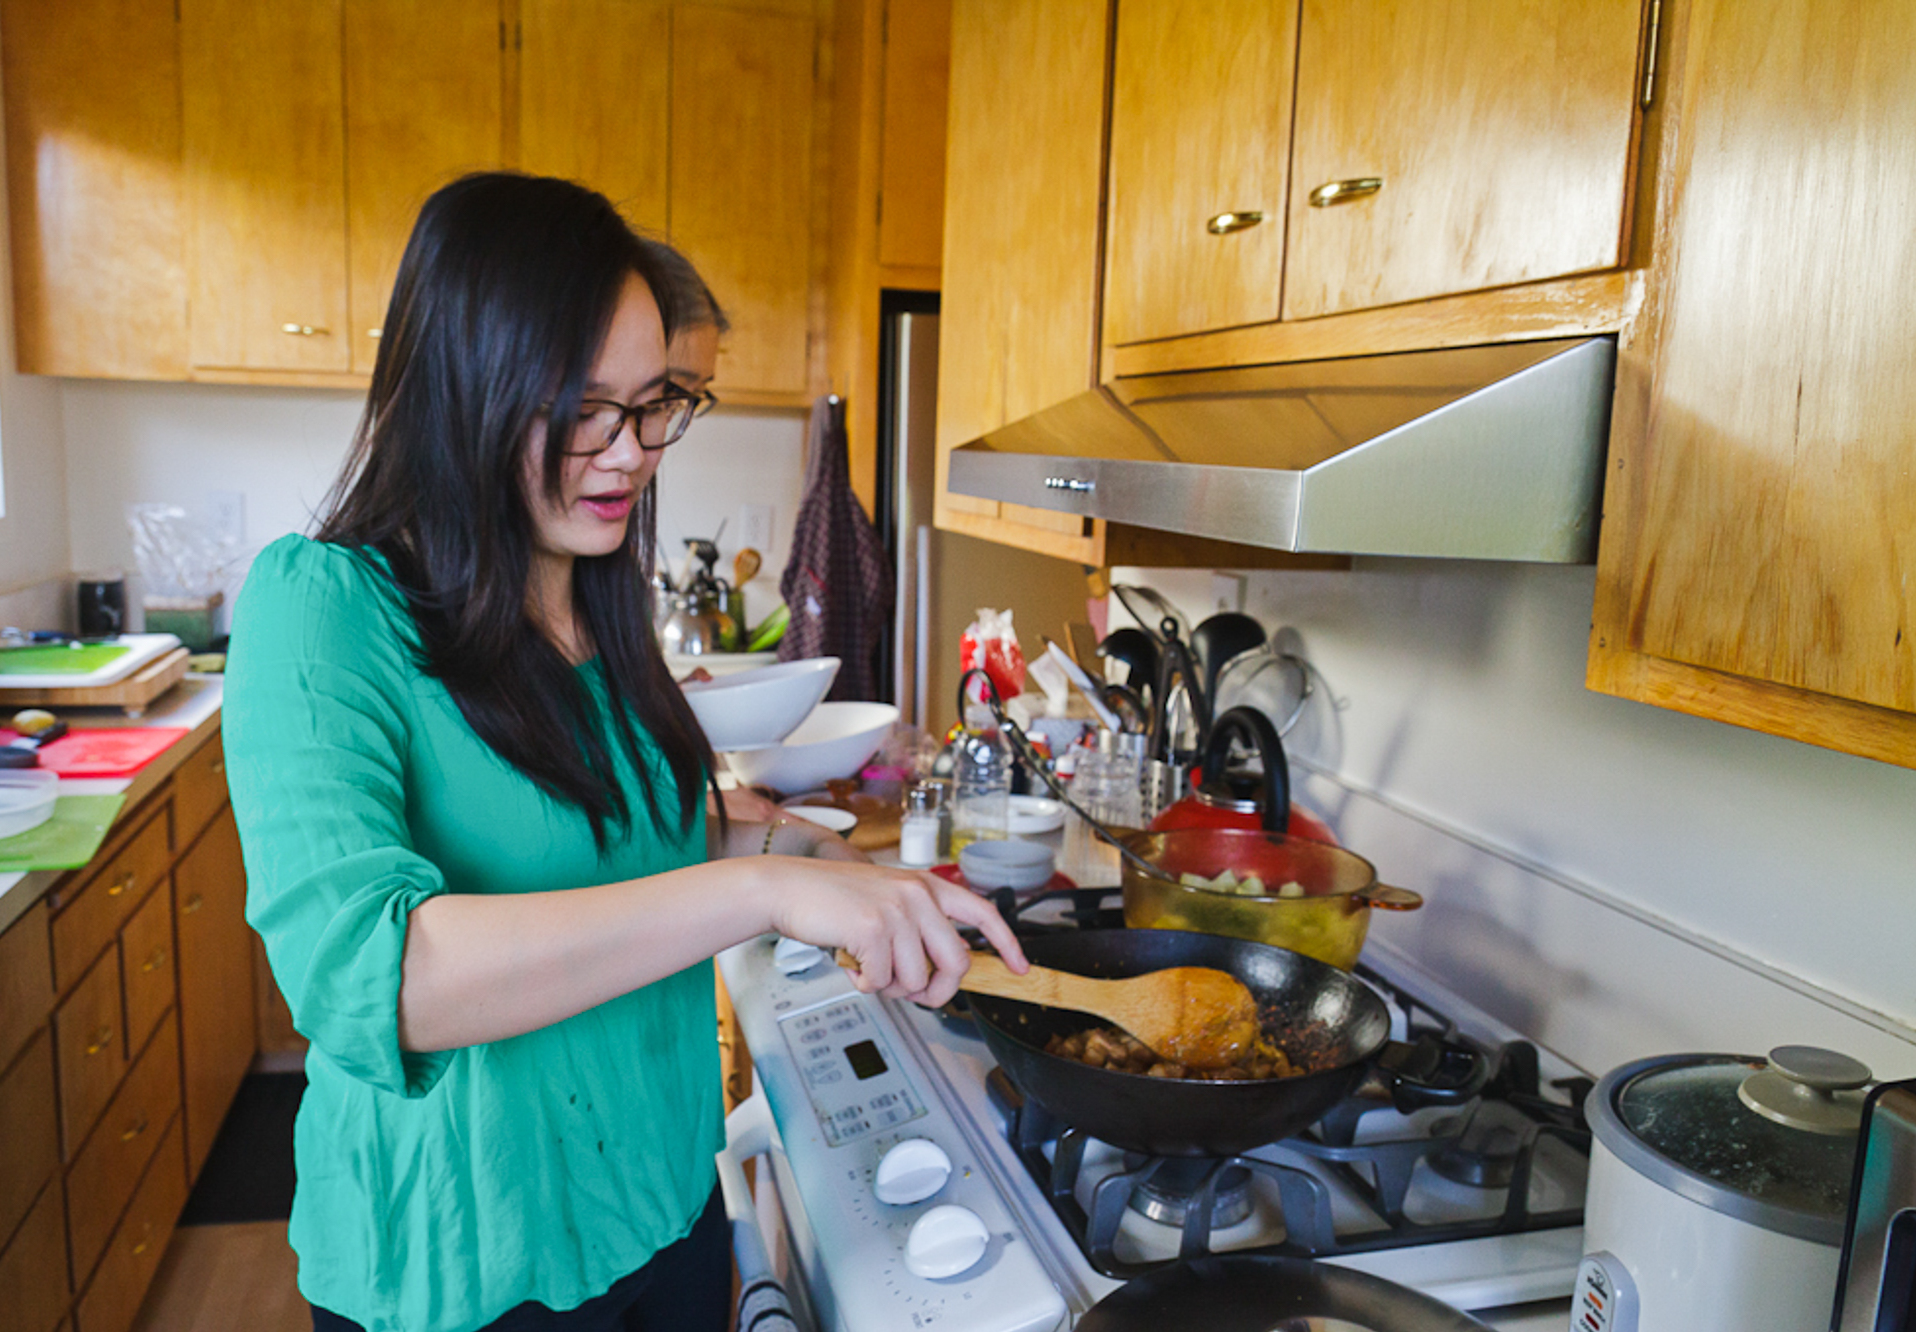 Khanh-Hoa Nguyen cooks caramelized pork belly with ginger, a Cambodian dish served to women who have just given birth.